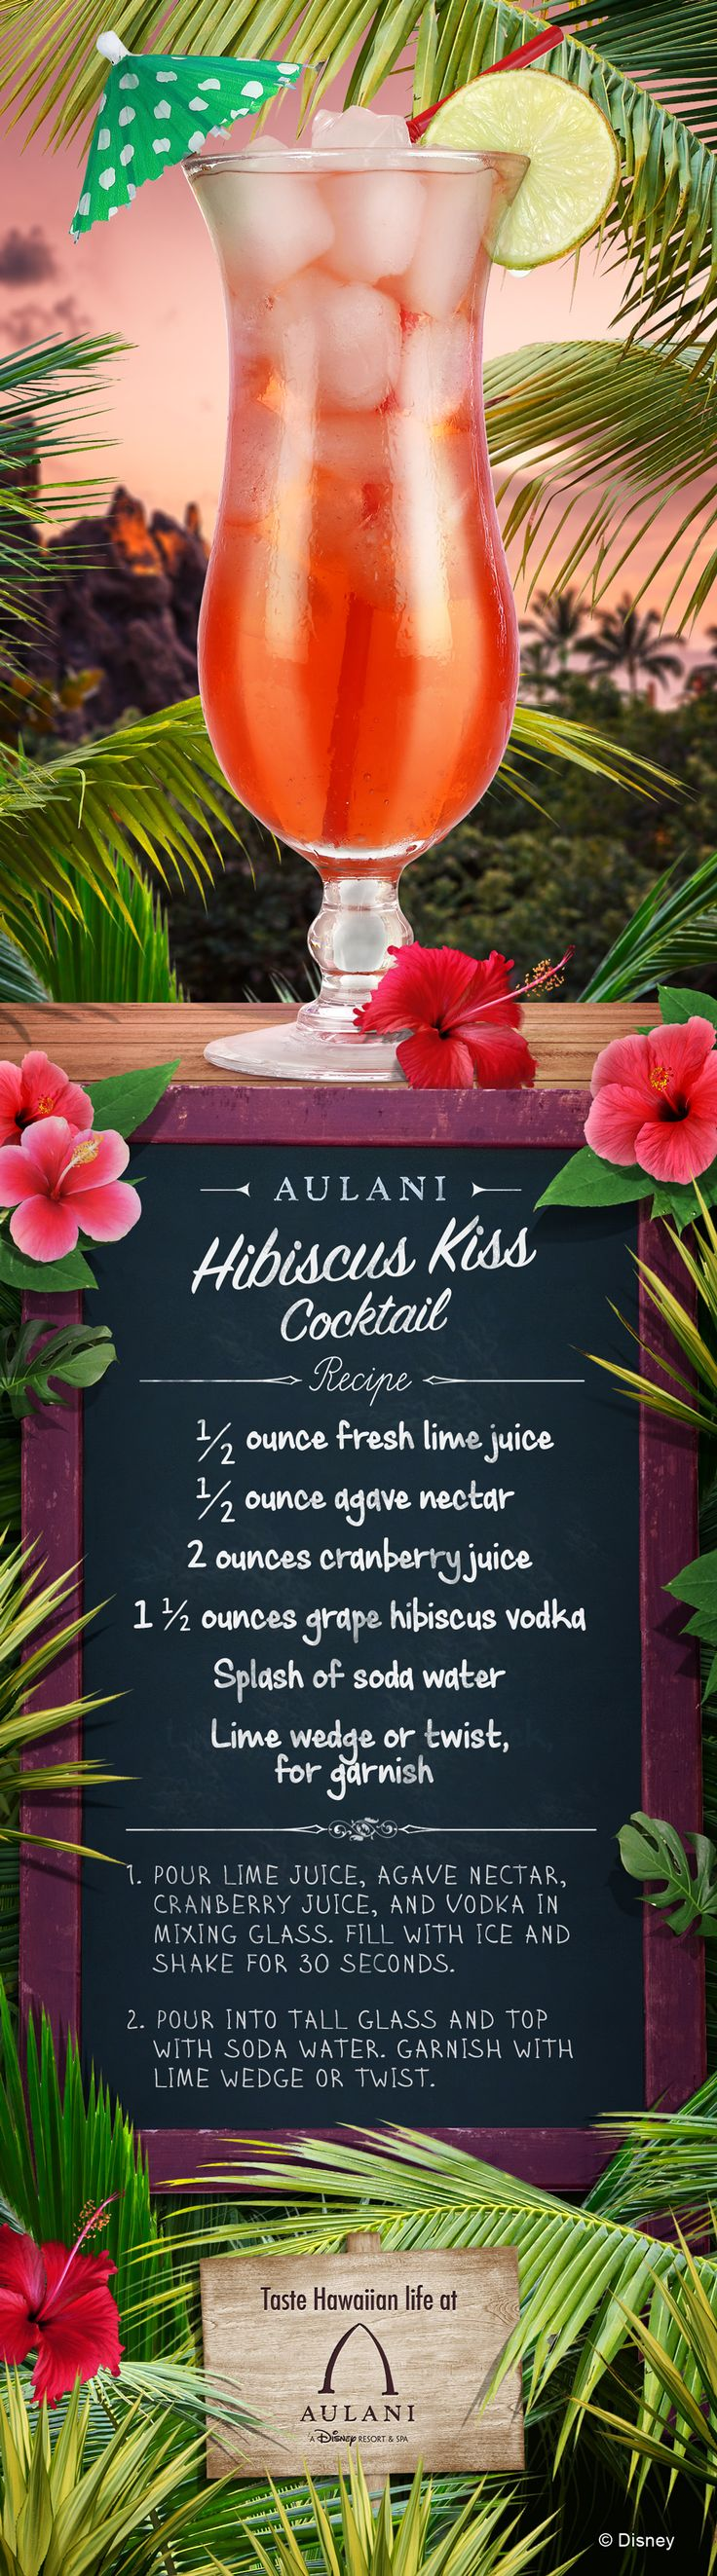 Get a kiss of refreshment with Disney's Hibiscus Kiss Cocktail! Give this light and easy cocktail recipe a try and bring the flavors of Aulani to your home!